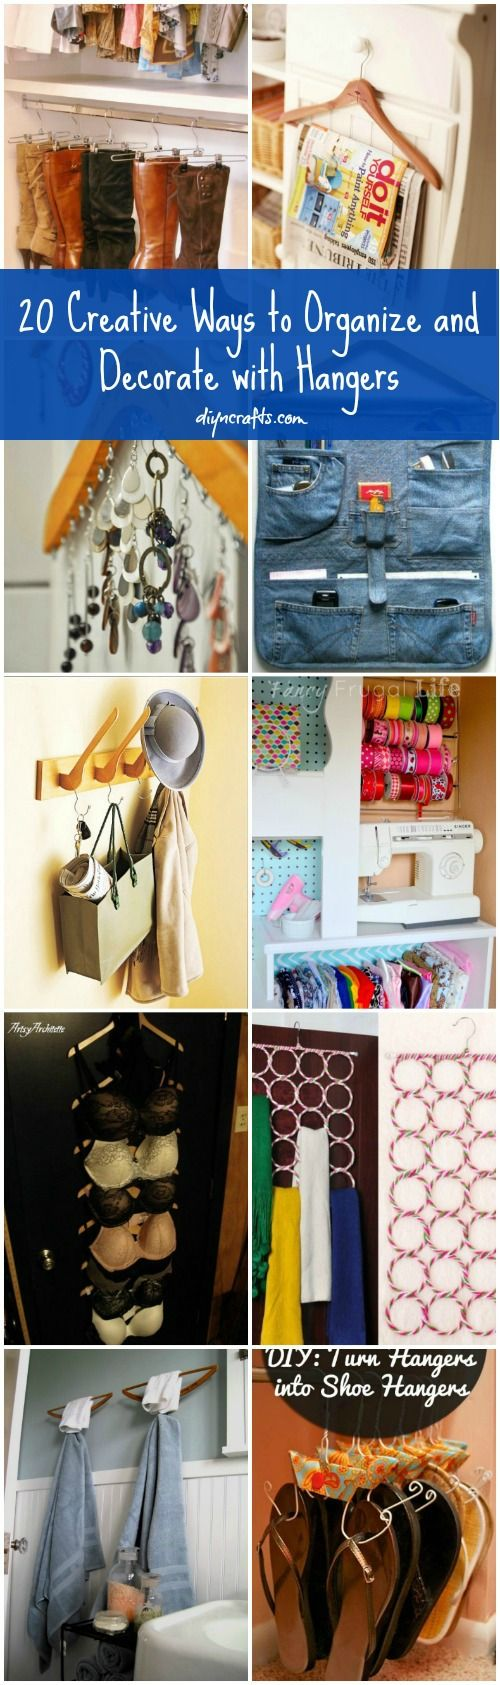 Organize with hangers?! YES! - 20 Creative Ways to Organize and Decorate with Hangers – DIY & Crafts